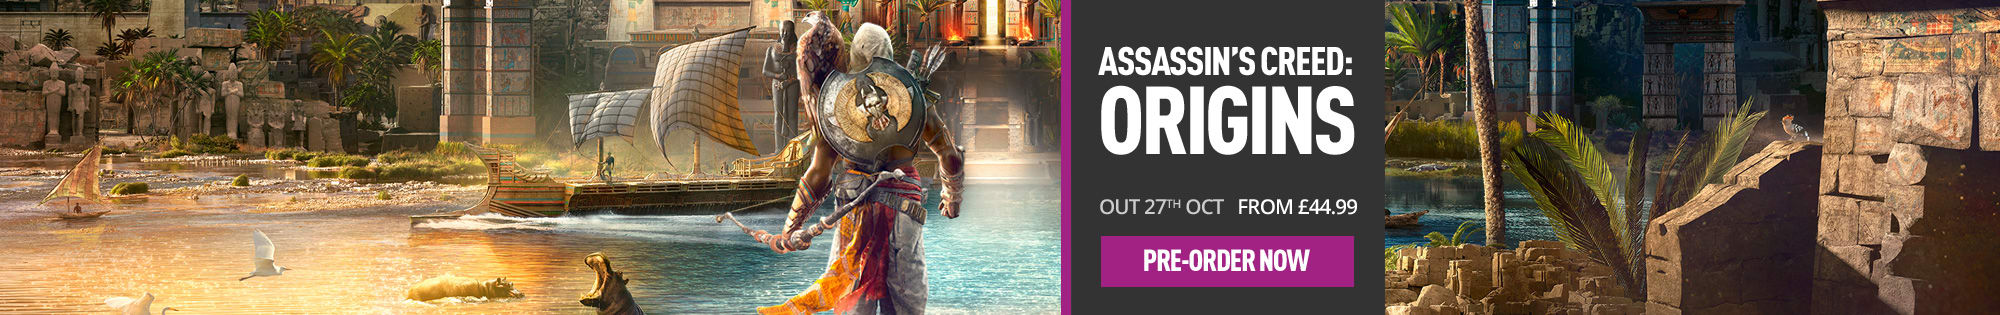 Preorder Assassin's Creed Origins at GAME.co.uk - Homepage Banner